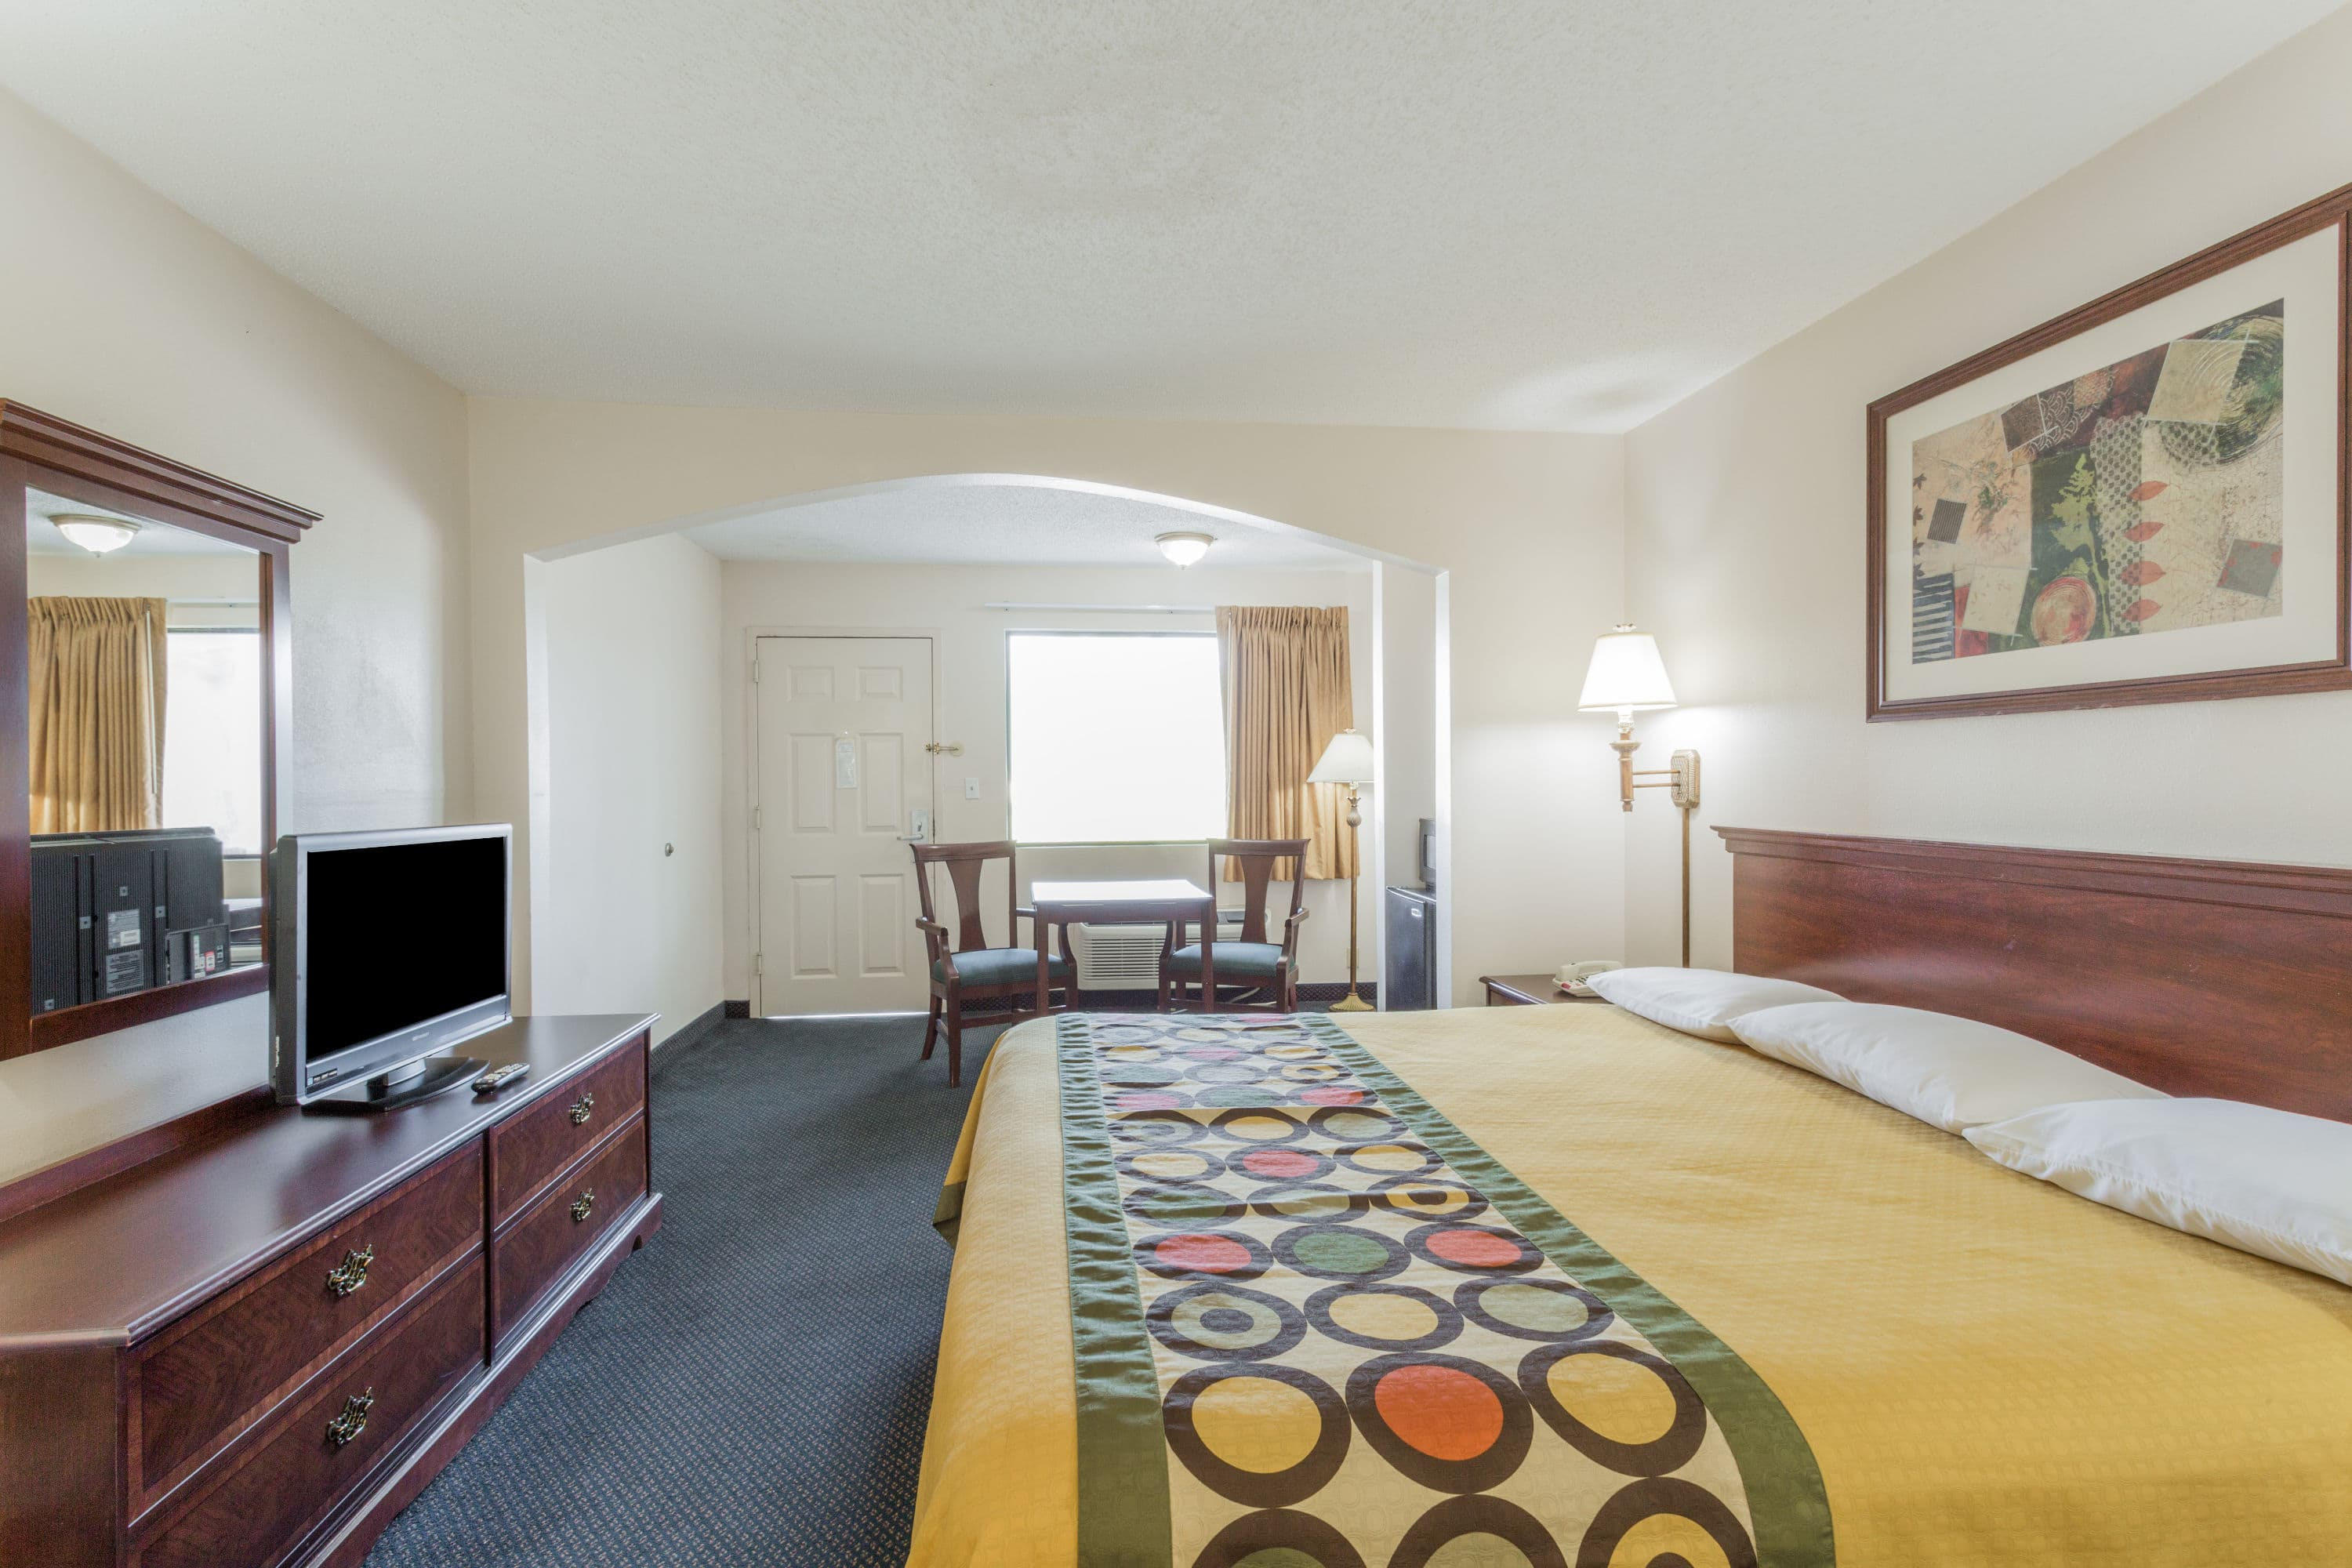 Affordable Guest Room At The Super Slidell In Louisiana With Hotels La